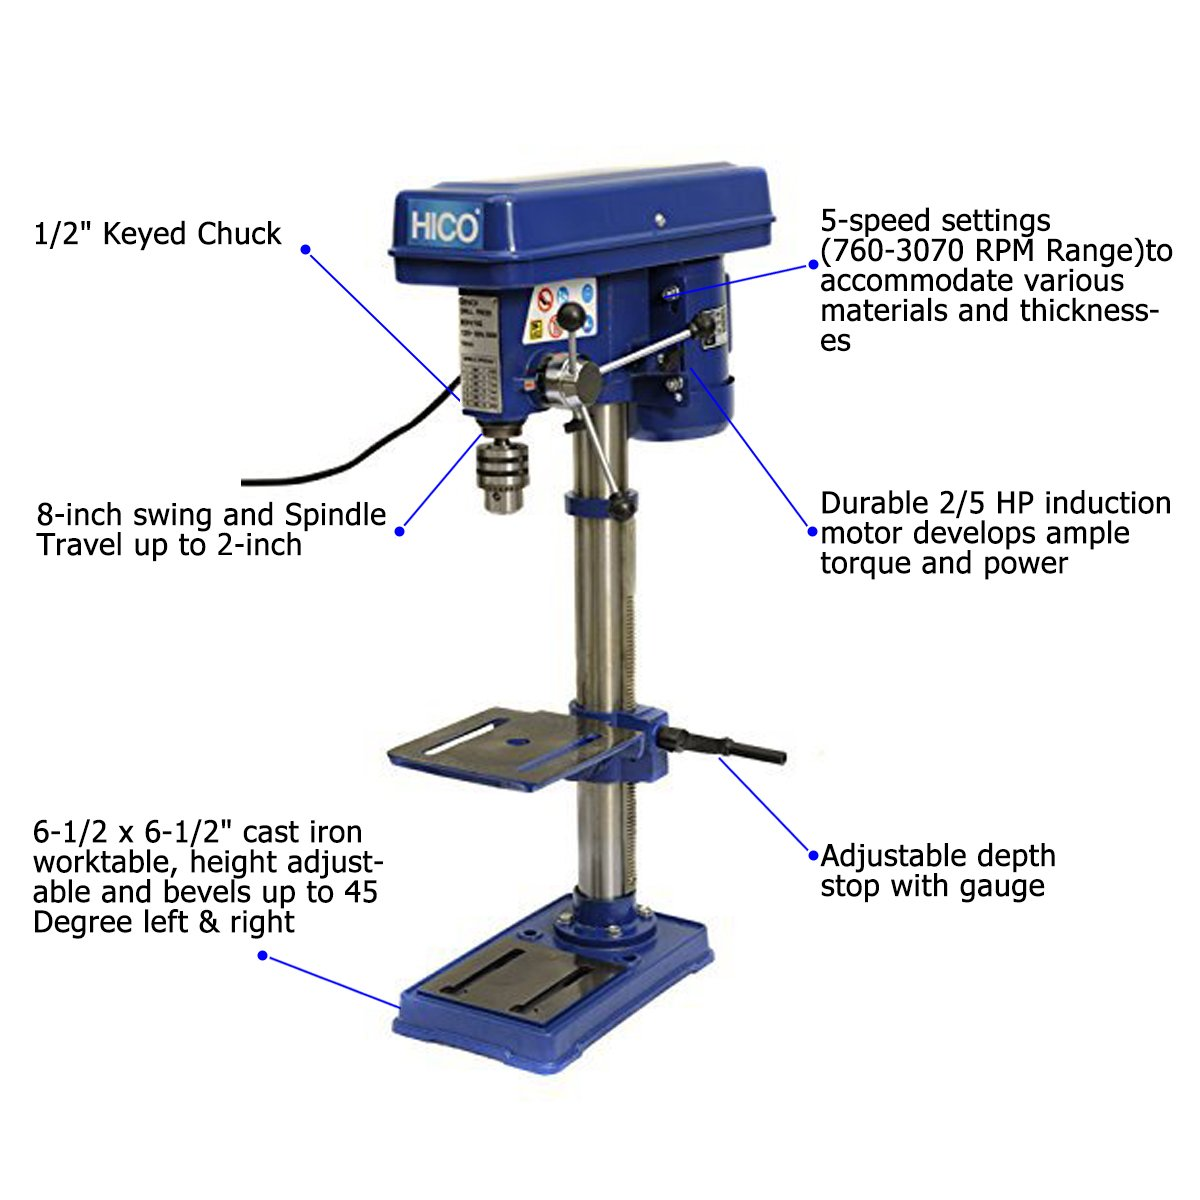 HICO Bench Top Drill Press - 8 Inch Adjustable Height, 5 Speed Motor, Cast Iron Table DP4113 by HICO (Image #2)